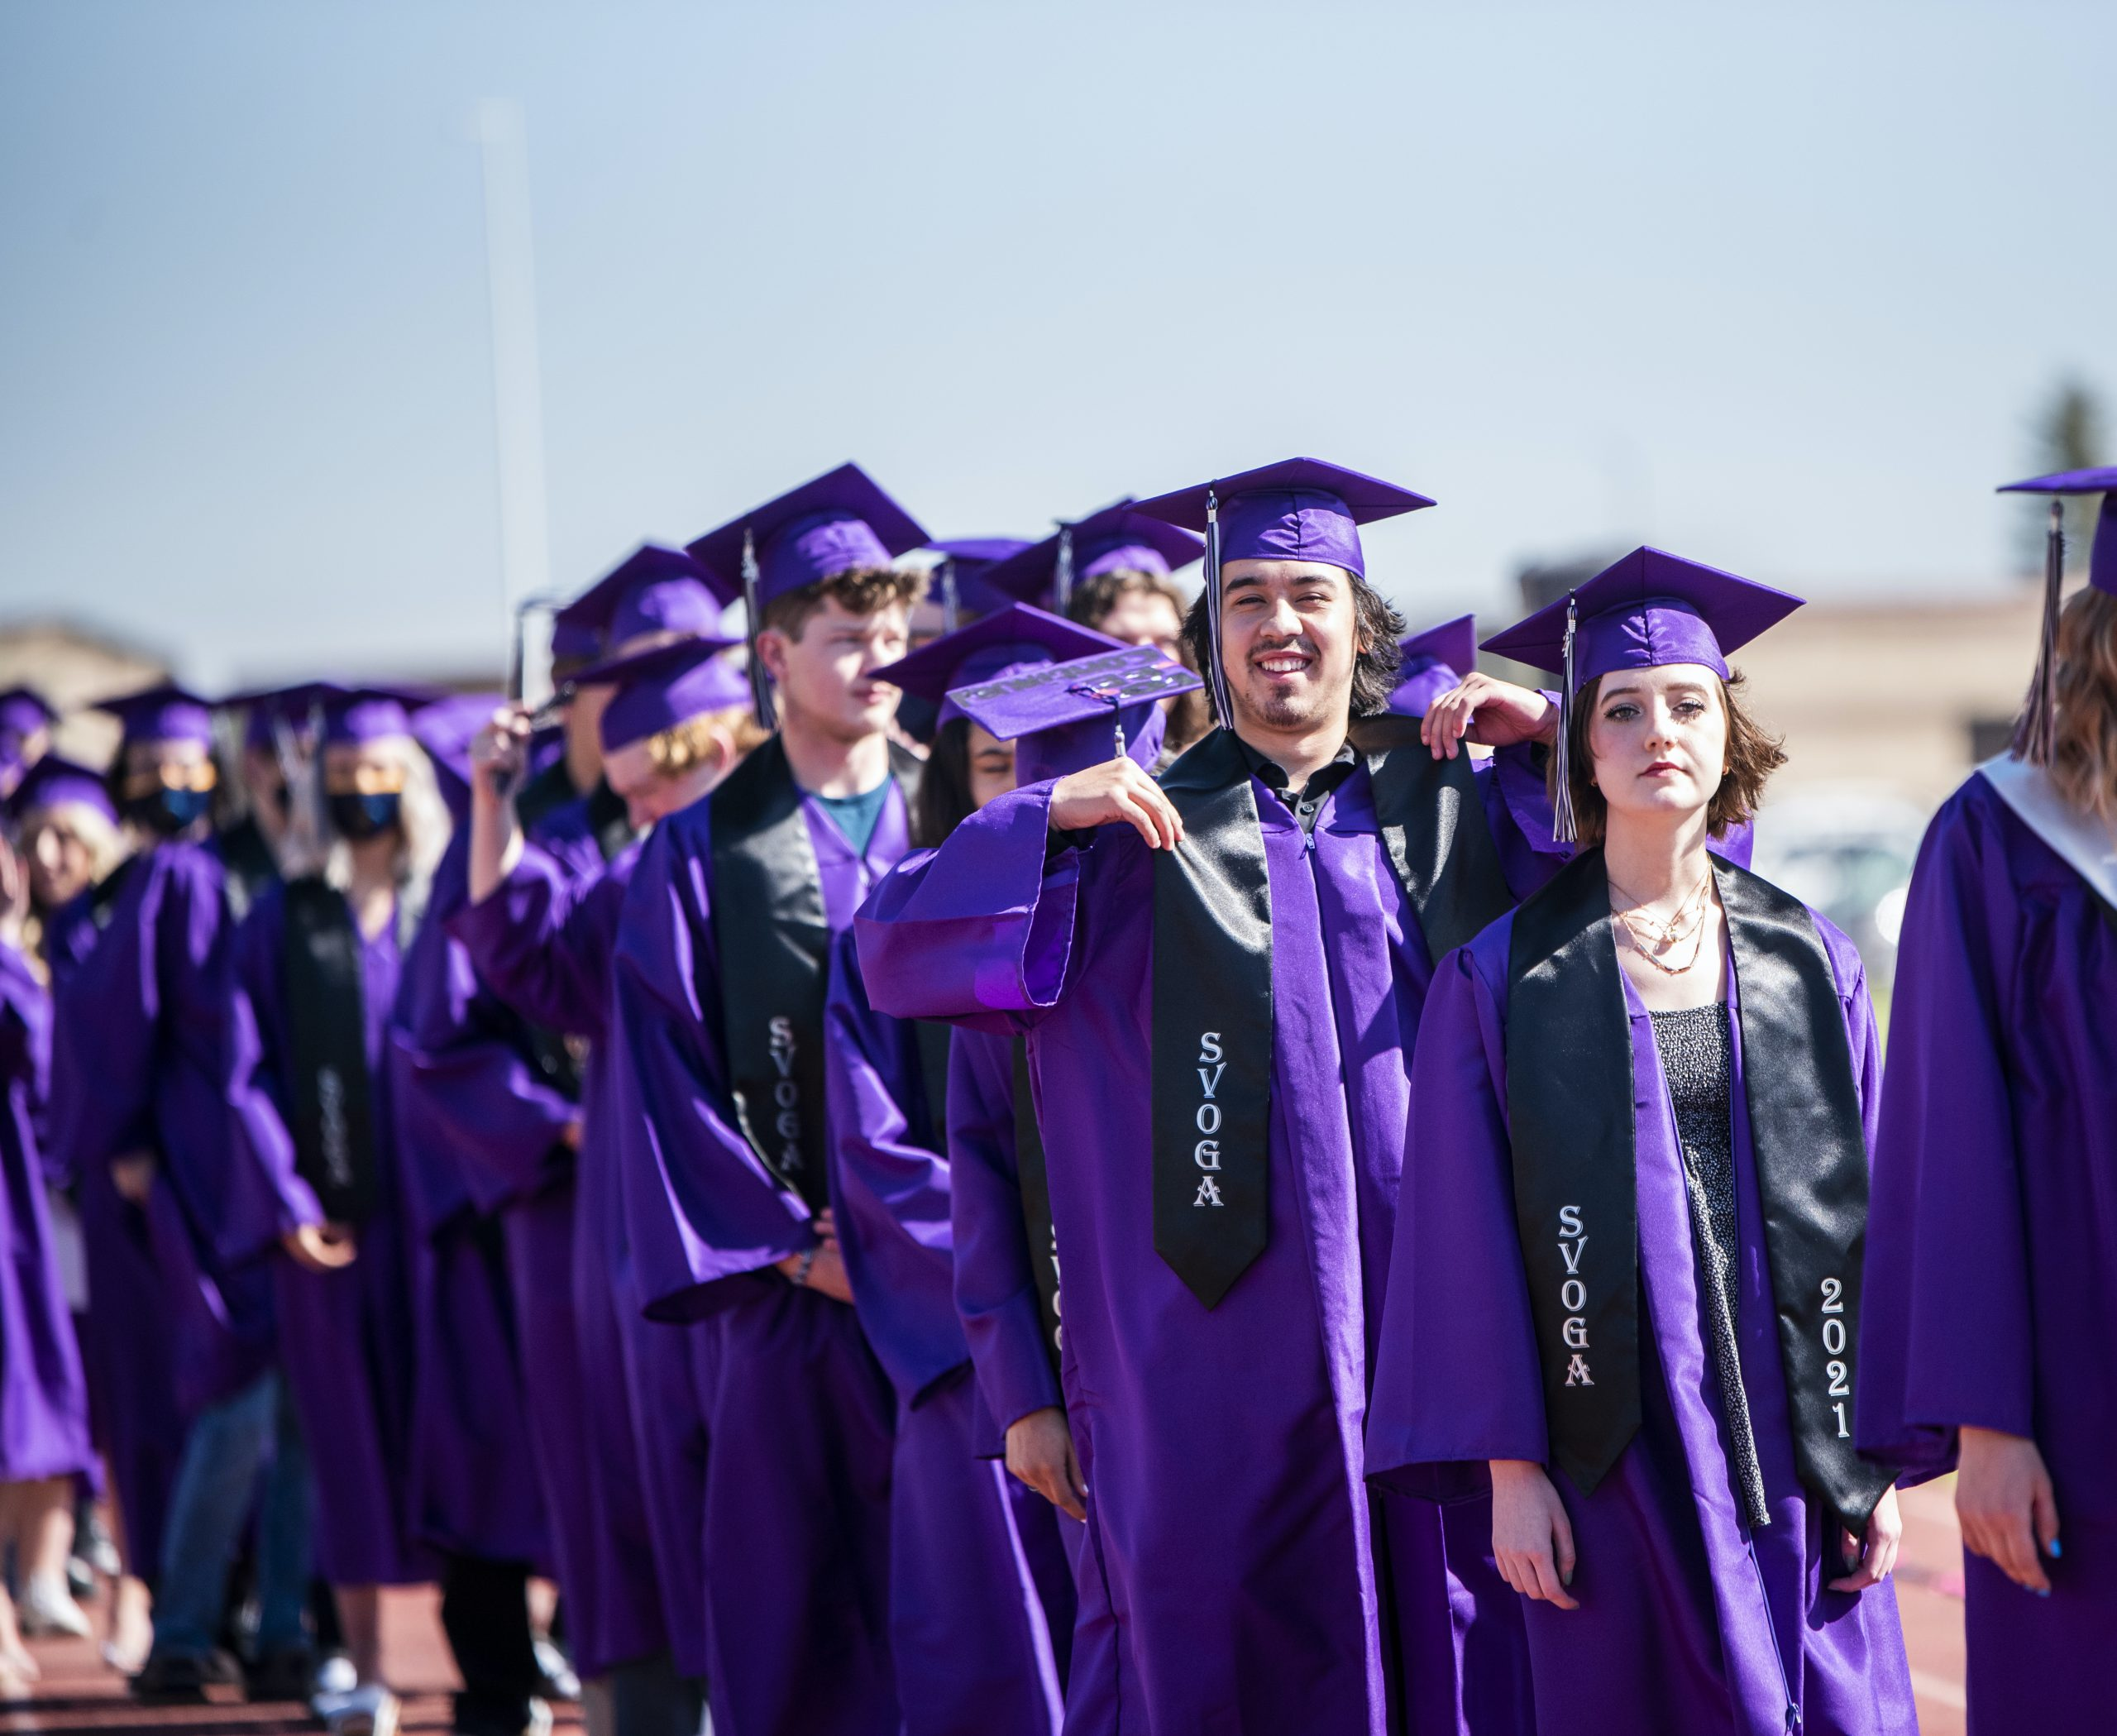 Male graduate with a big smile during graduation line up